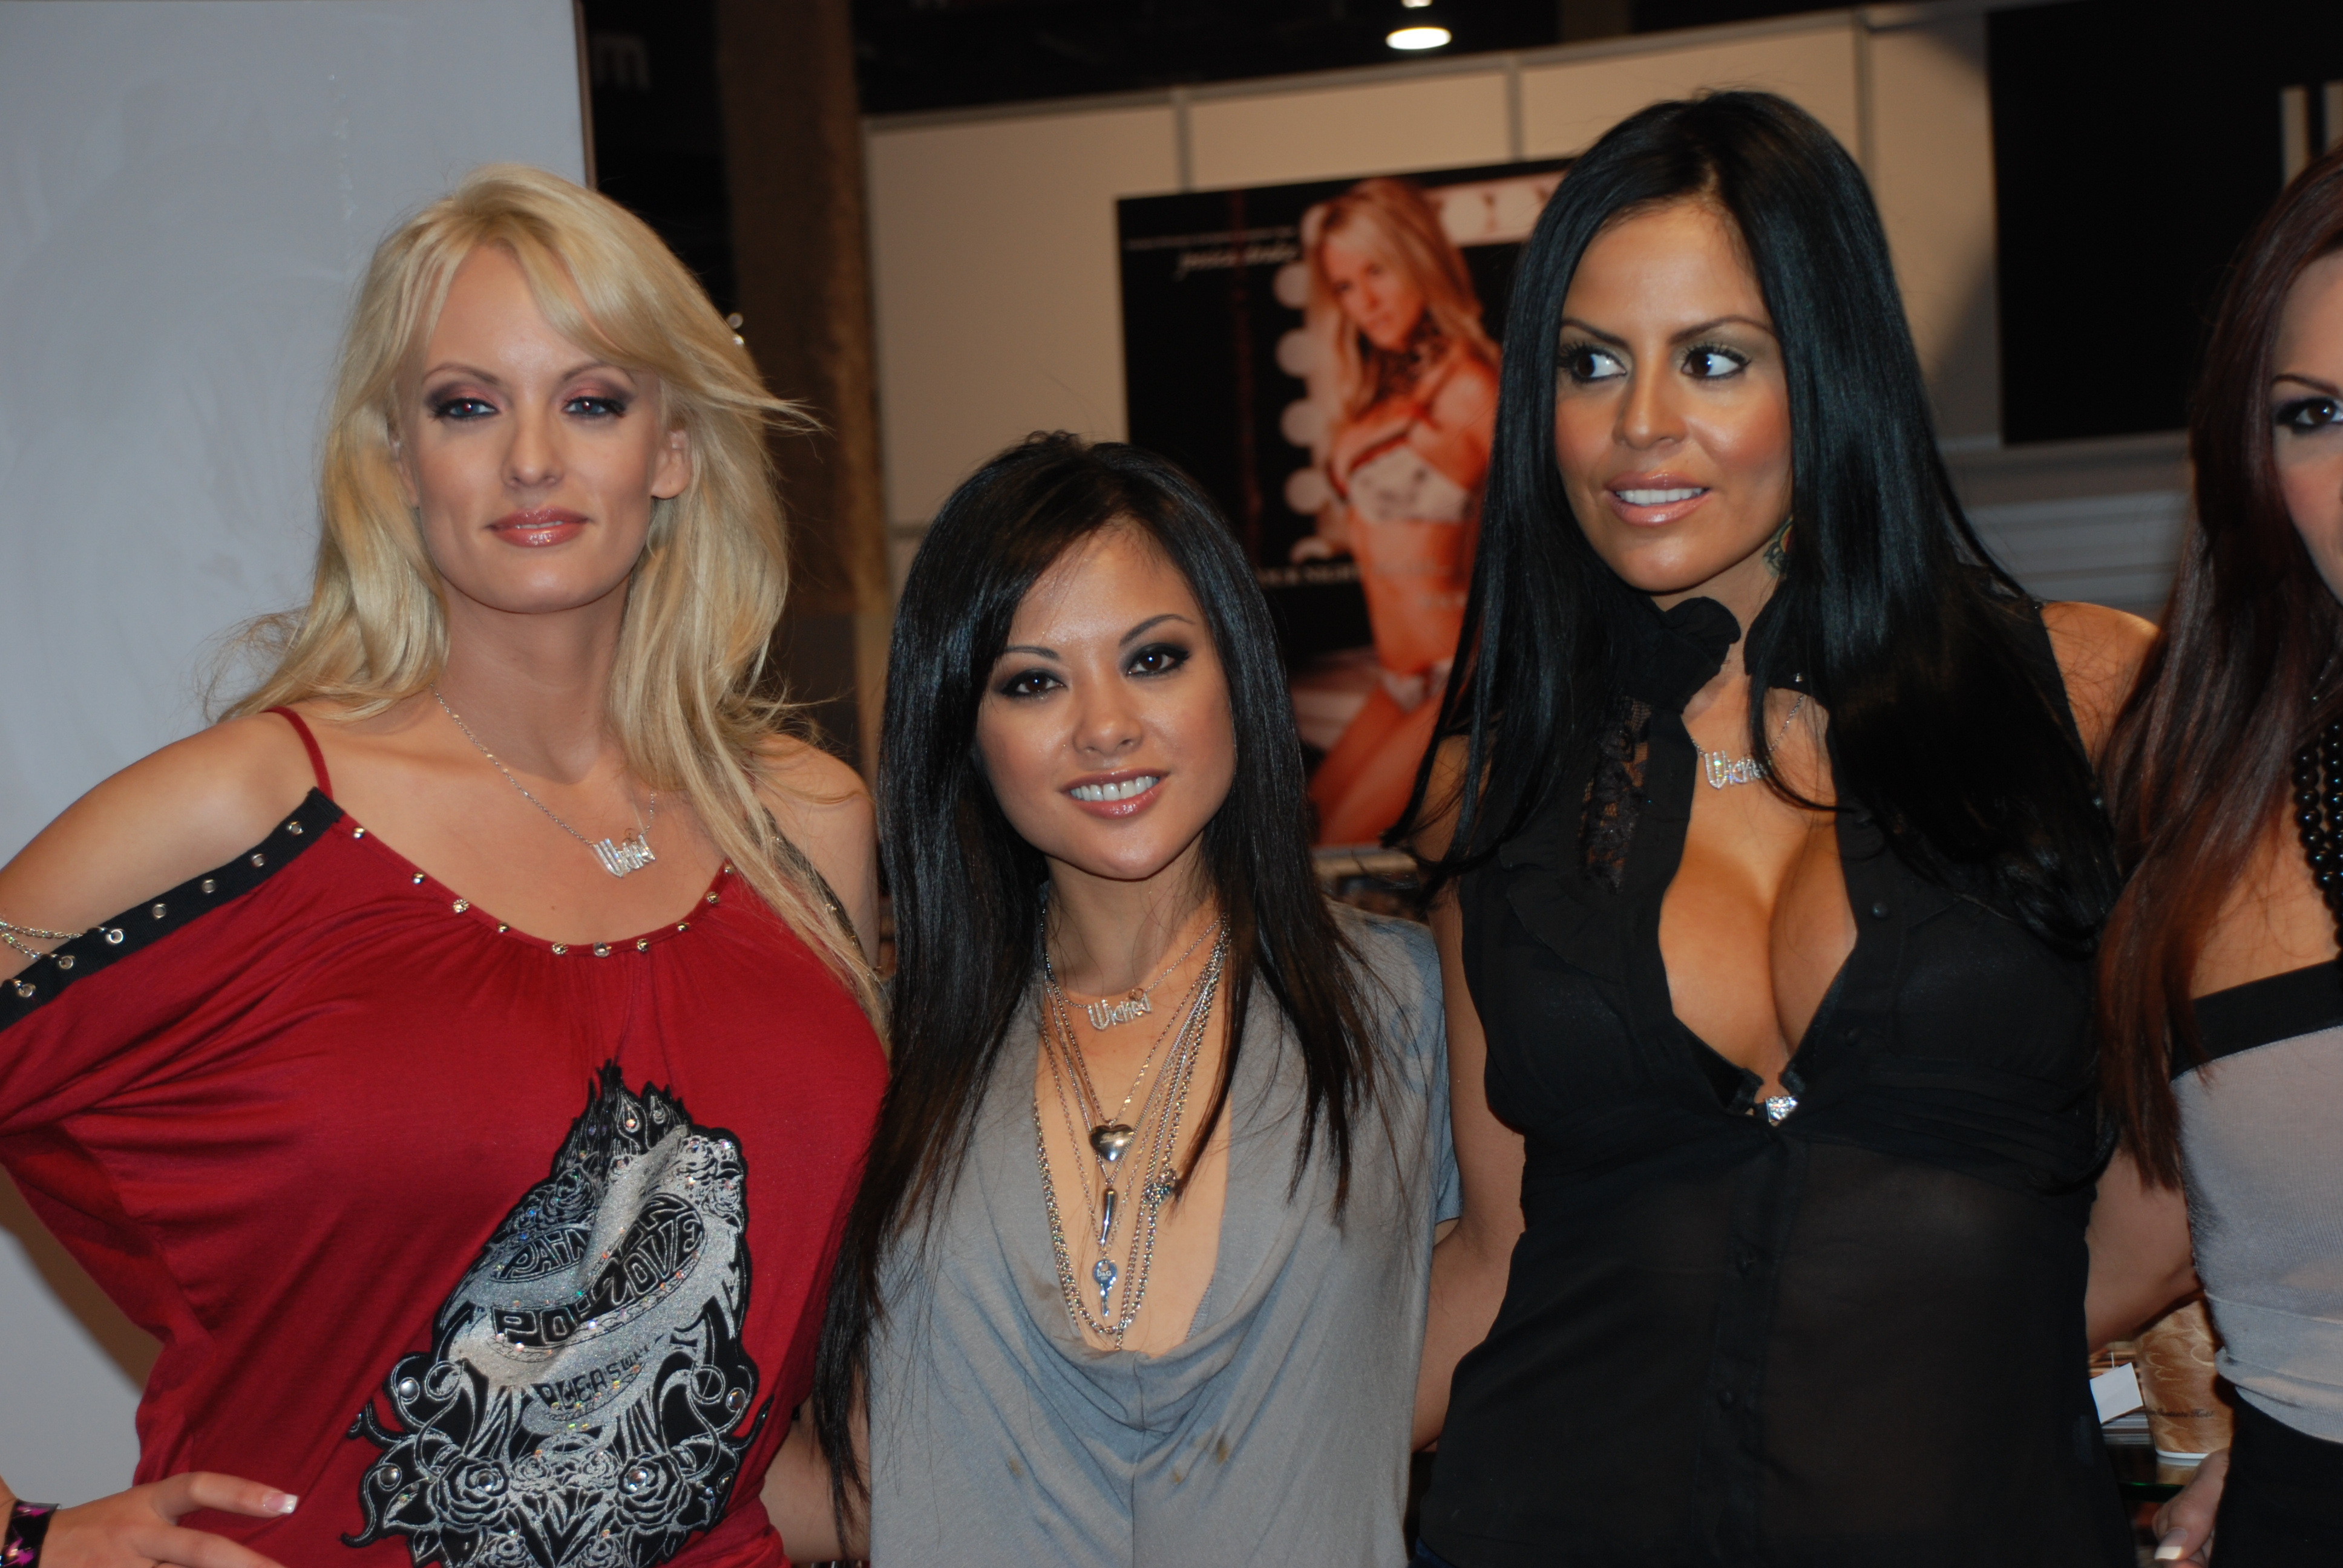 Filewicked Girls At Avn Adult Entertainment Expo 2009 7 Jpg